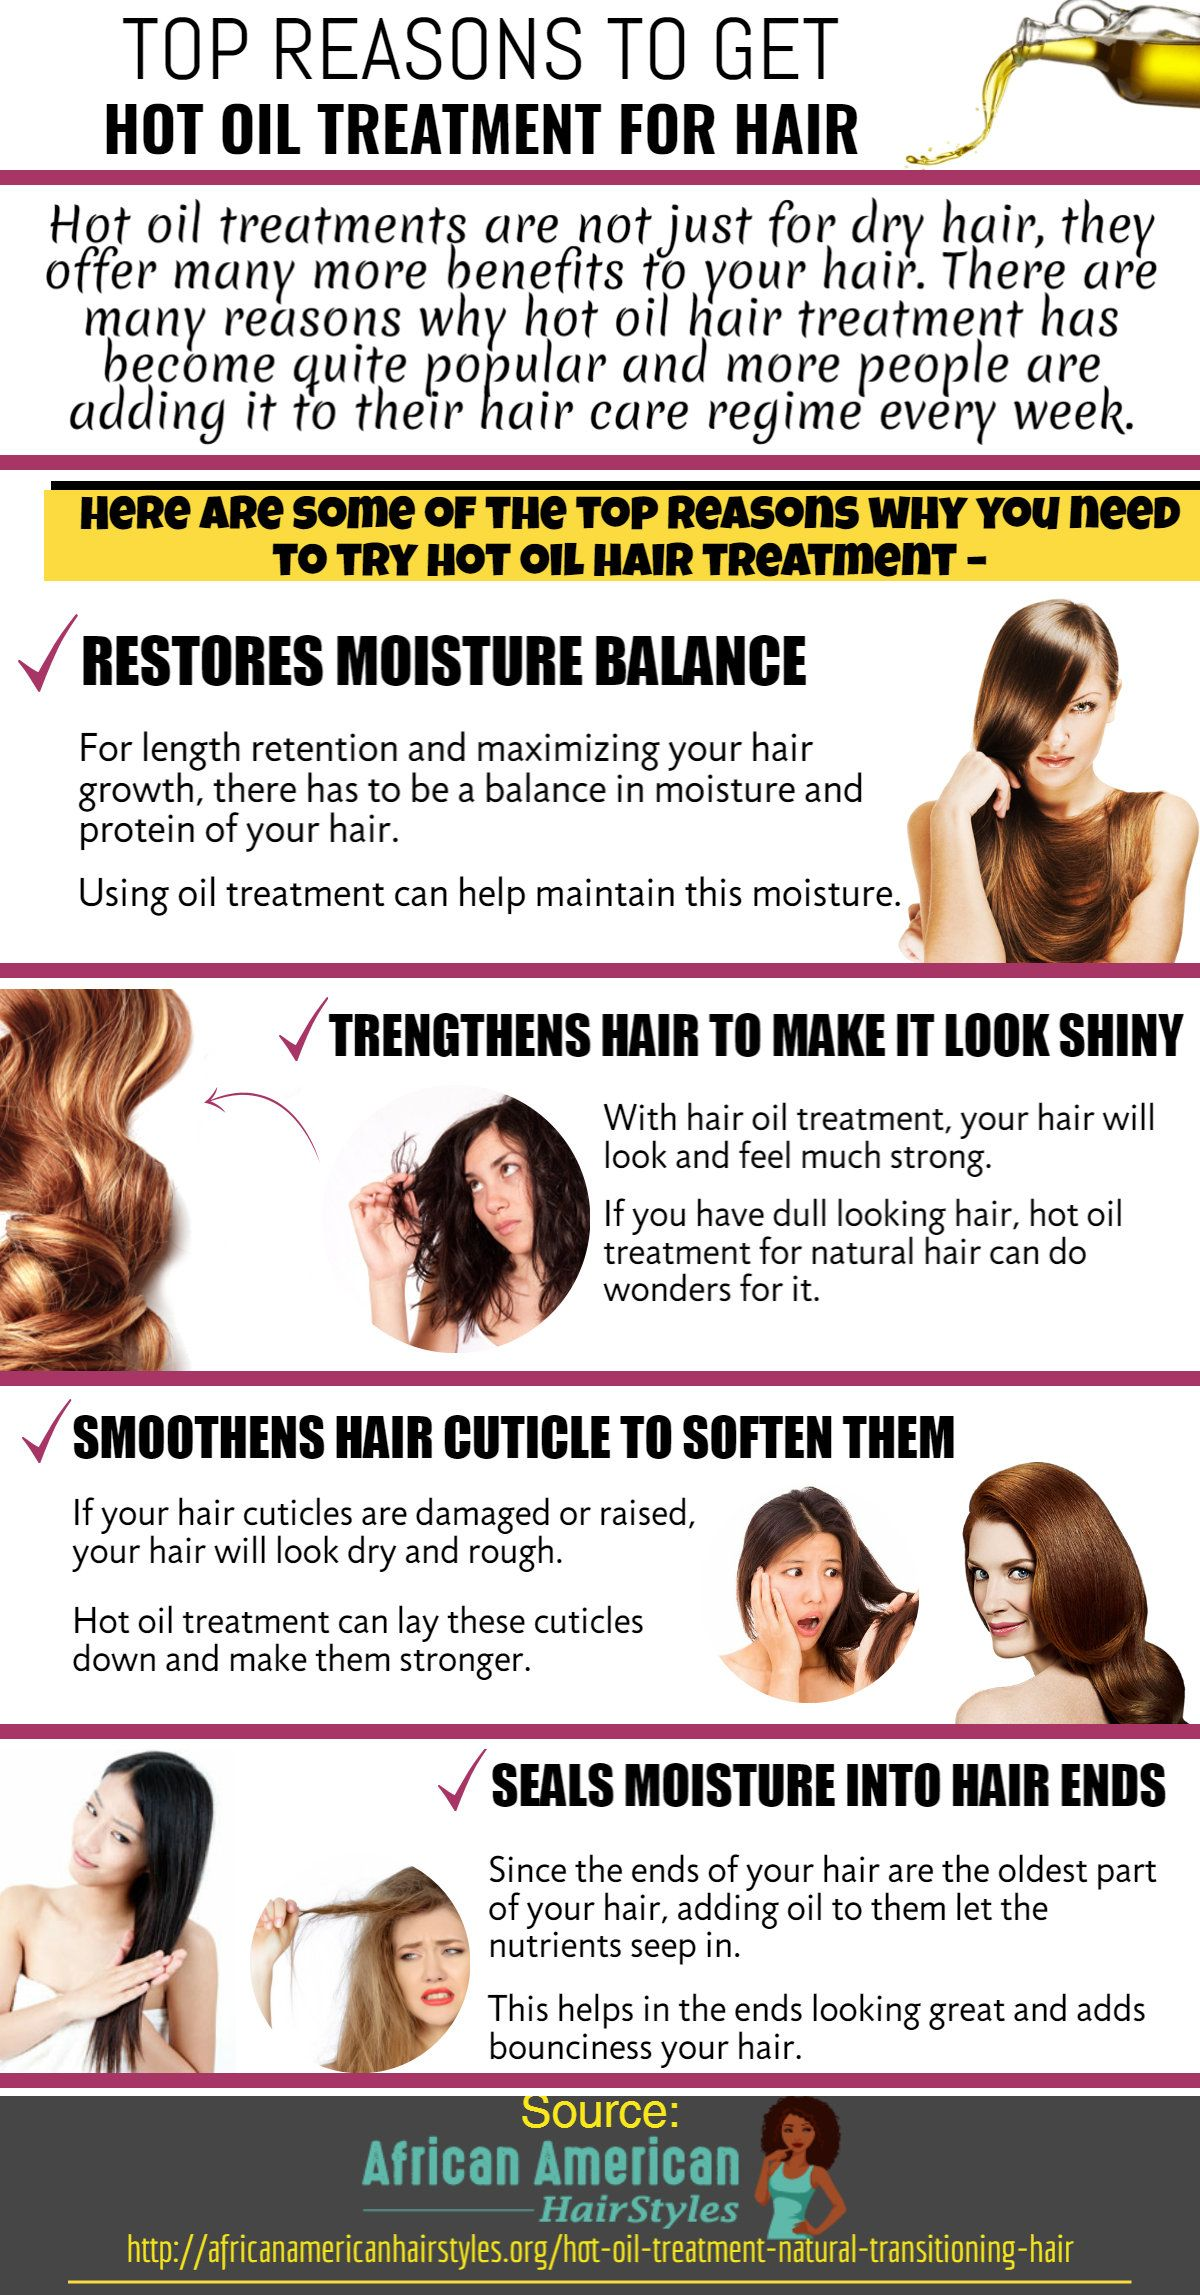 You Should Use Hot Oil Treatment For Hair Once Every Week After Choosing The Specific Oil That Can Recti Hair Hot Oil Oil Treatment For Hair Mexican Hairstyles